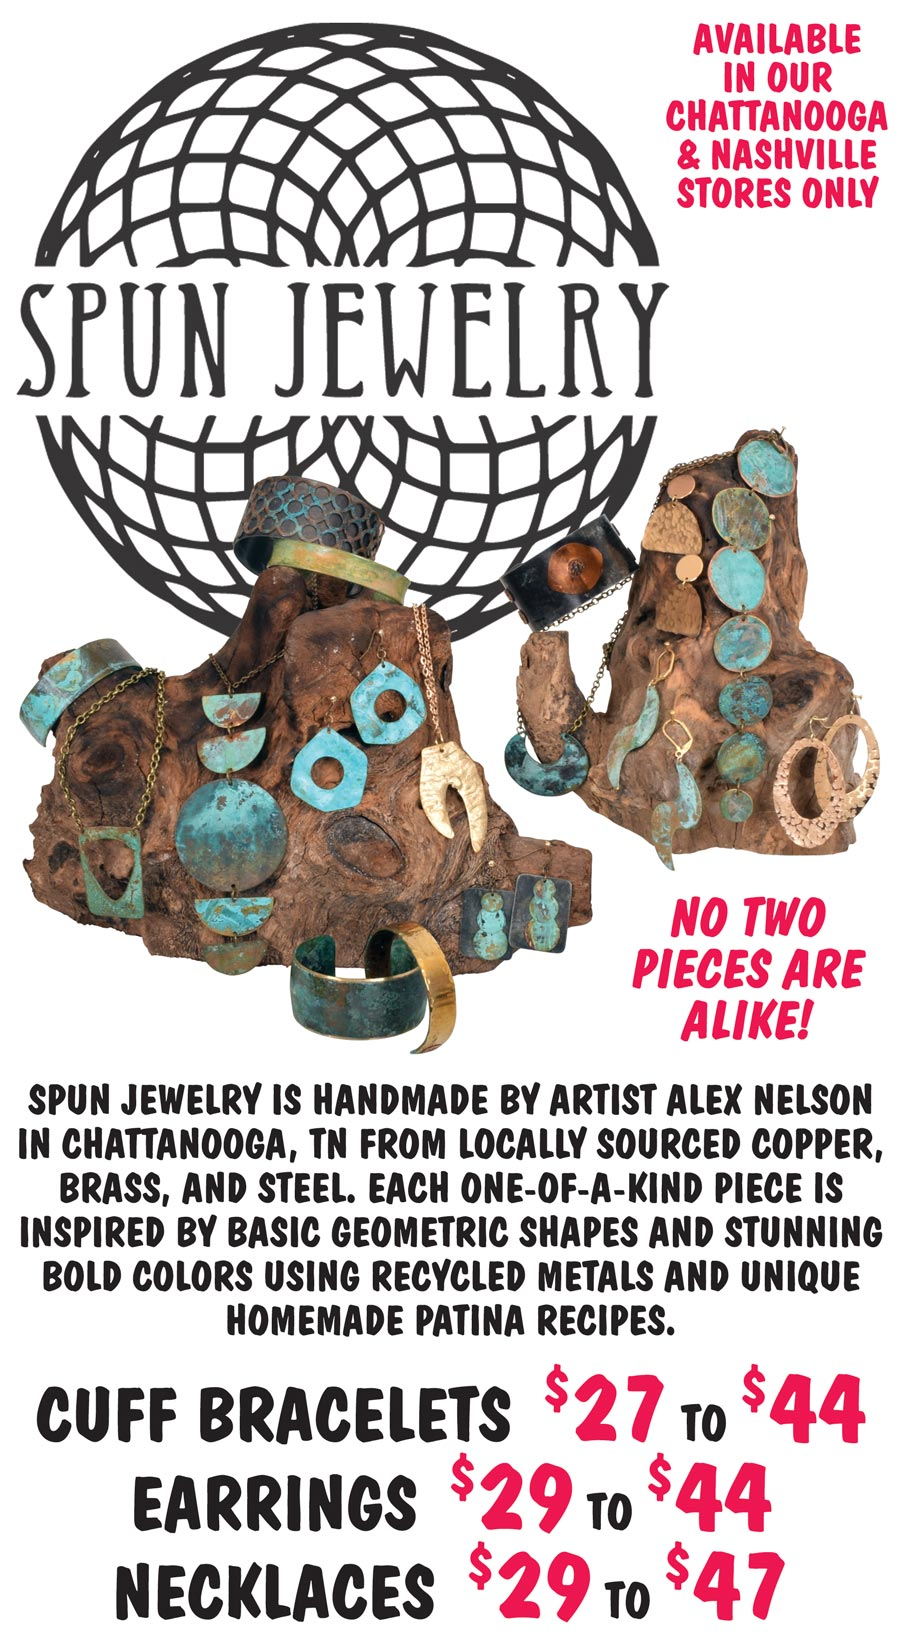 Handcrafted Spun Jewelry made by Chattanooga Tennessee artist Alex Nelson - Earrings $29 to $44, Necklaces $29 to $47, and Cuff Bracelets $27 to $44. Made of locally sourced copper, brass, and steel. Each one-of-a-kind piece is inspired by basic geometric shapes and stunning bold colors using recycled metals and unique homemade patina recipes. Available in our Chattanooga, Knoxville, and Nashville stores only.